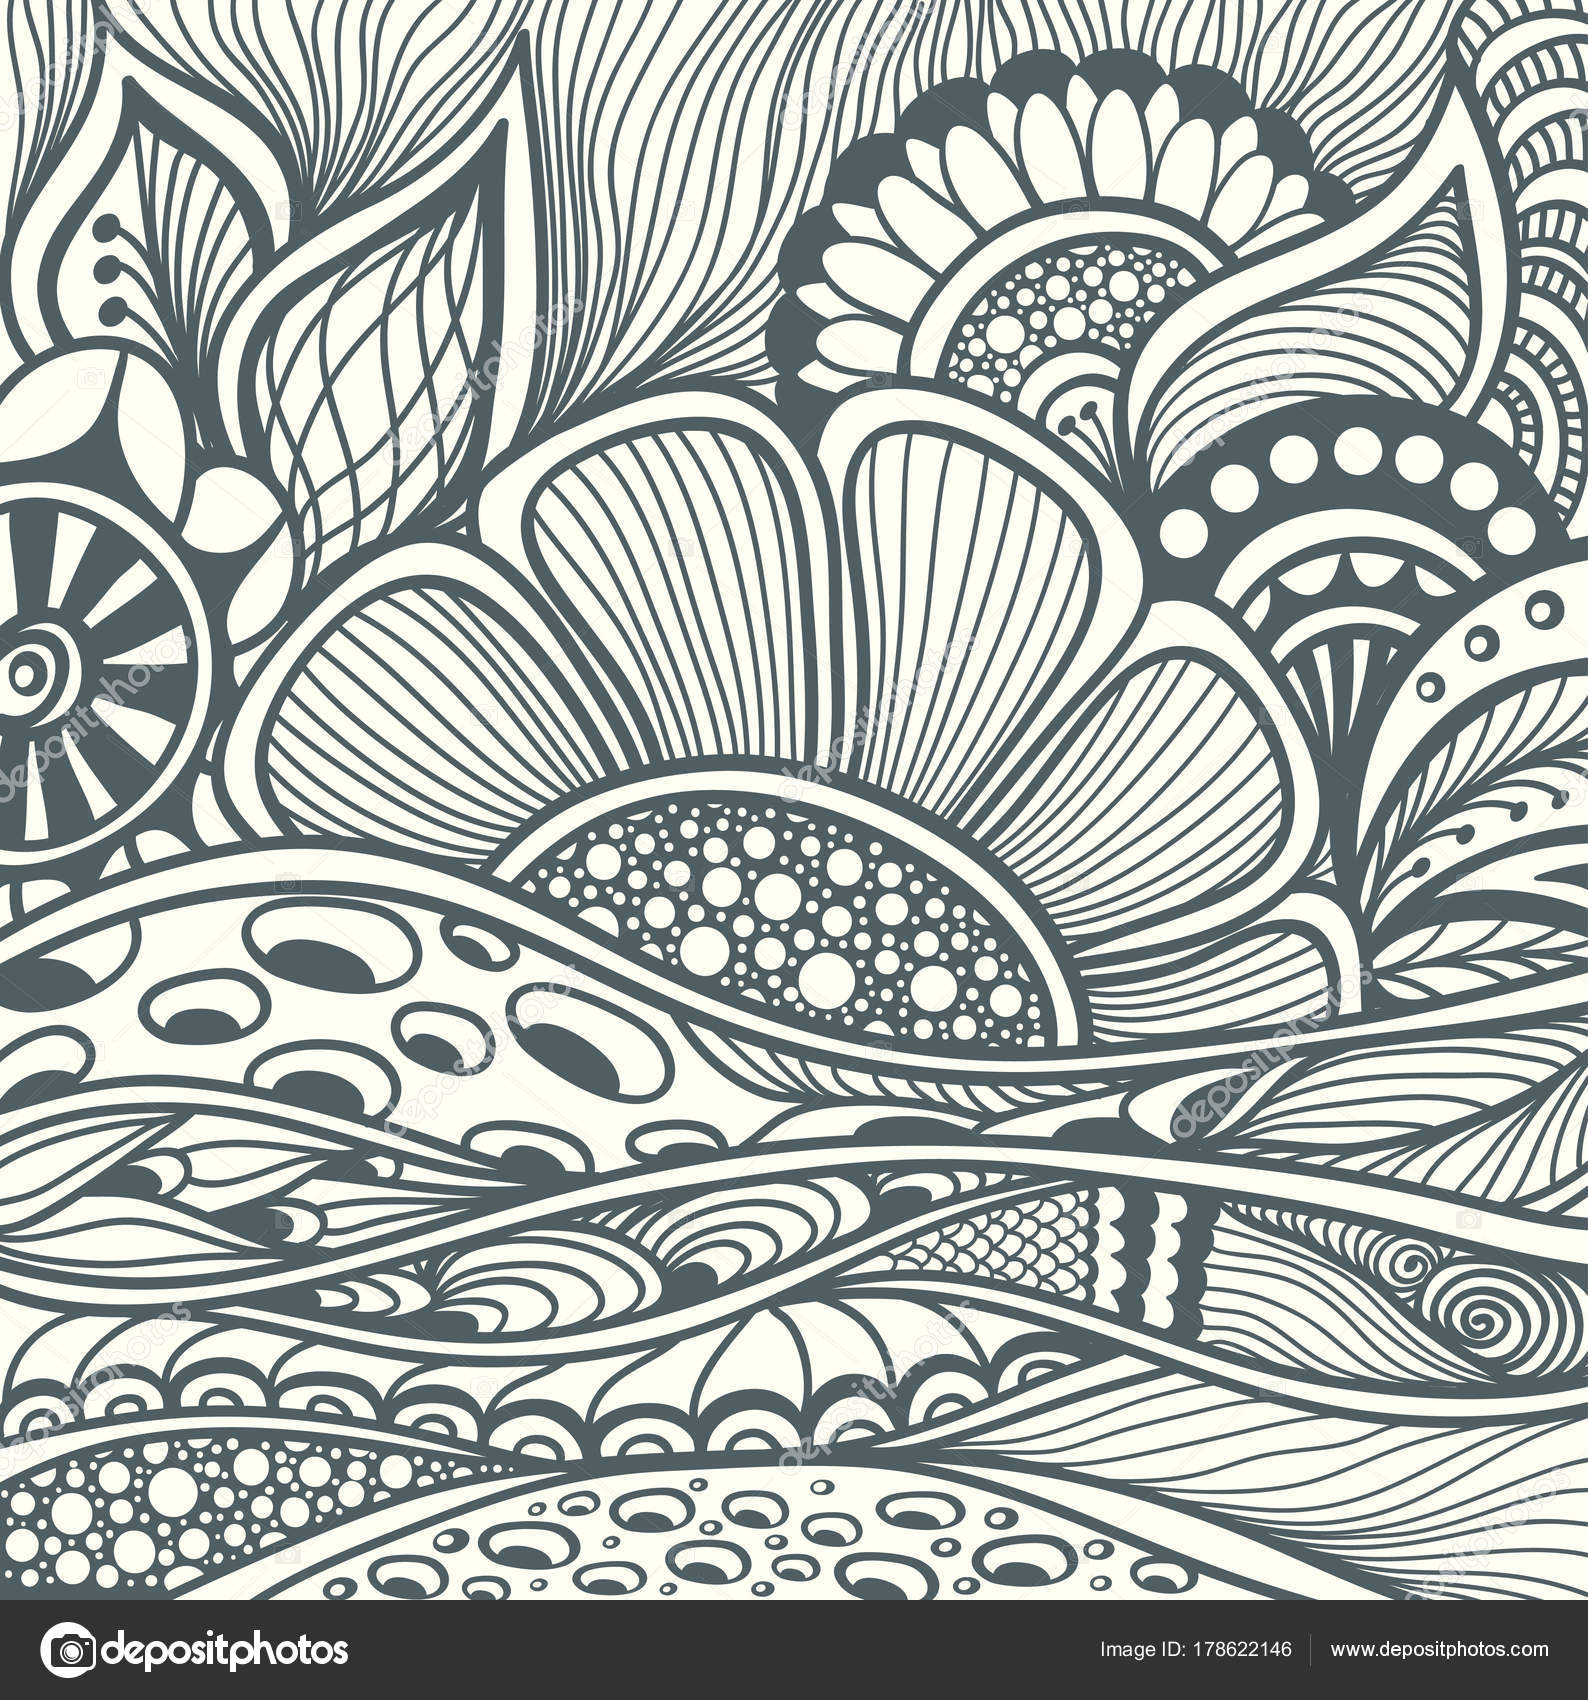 abstract floral zentangle background